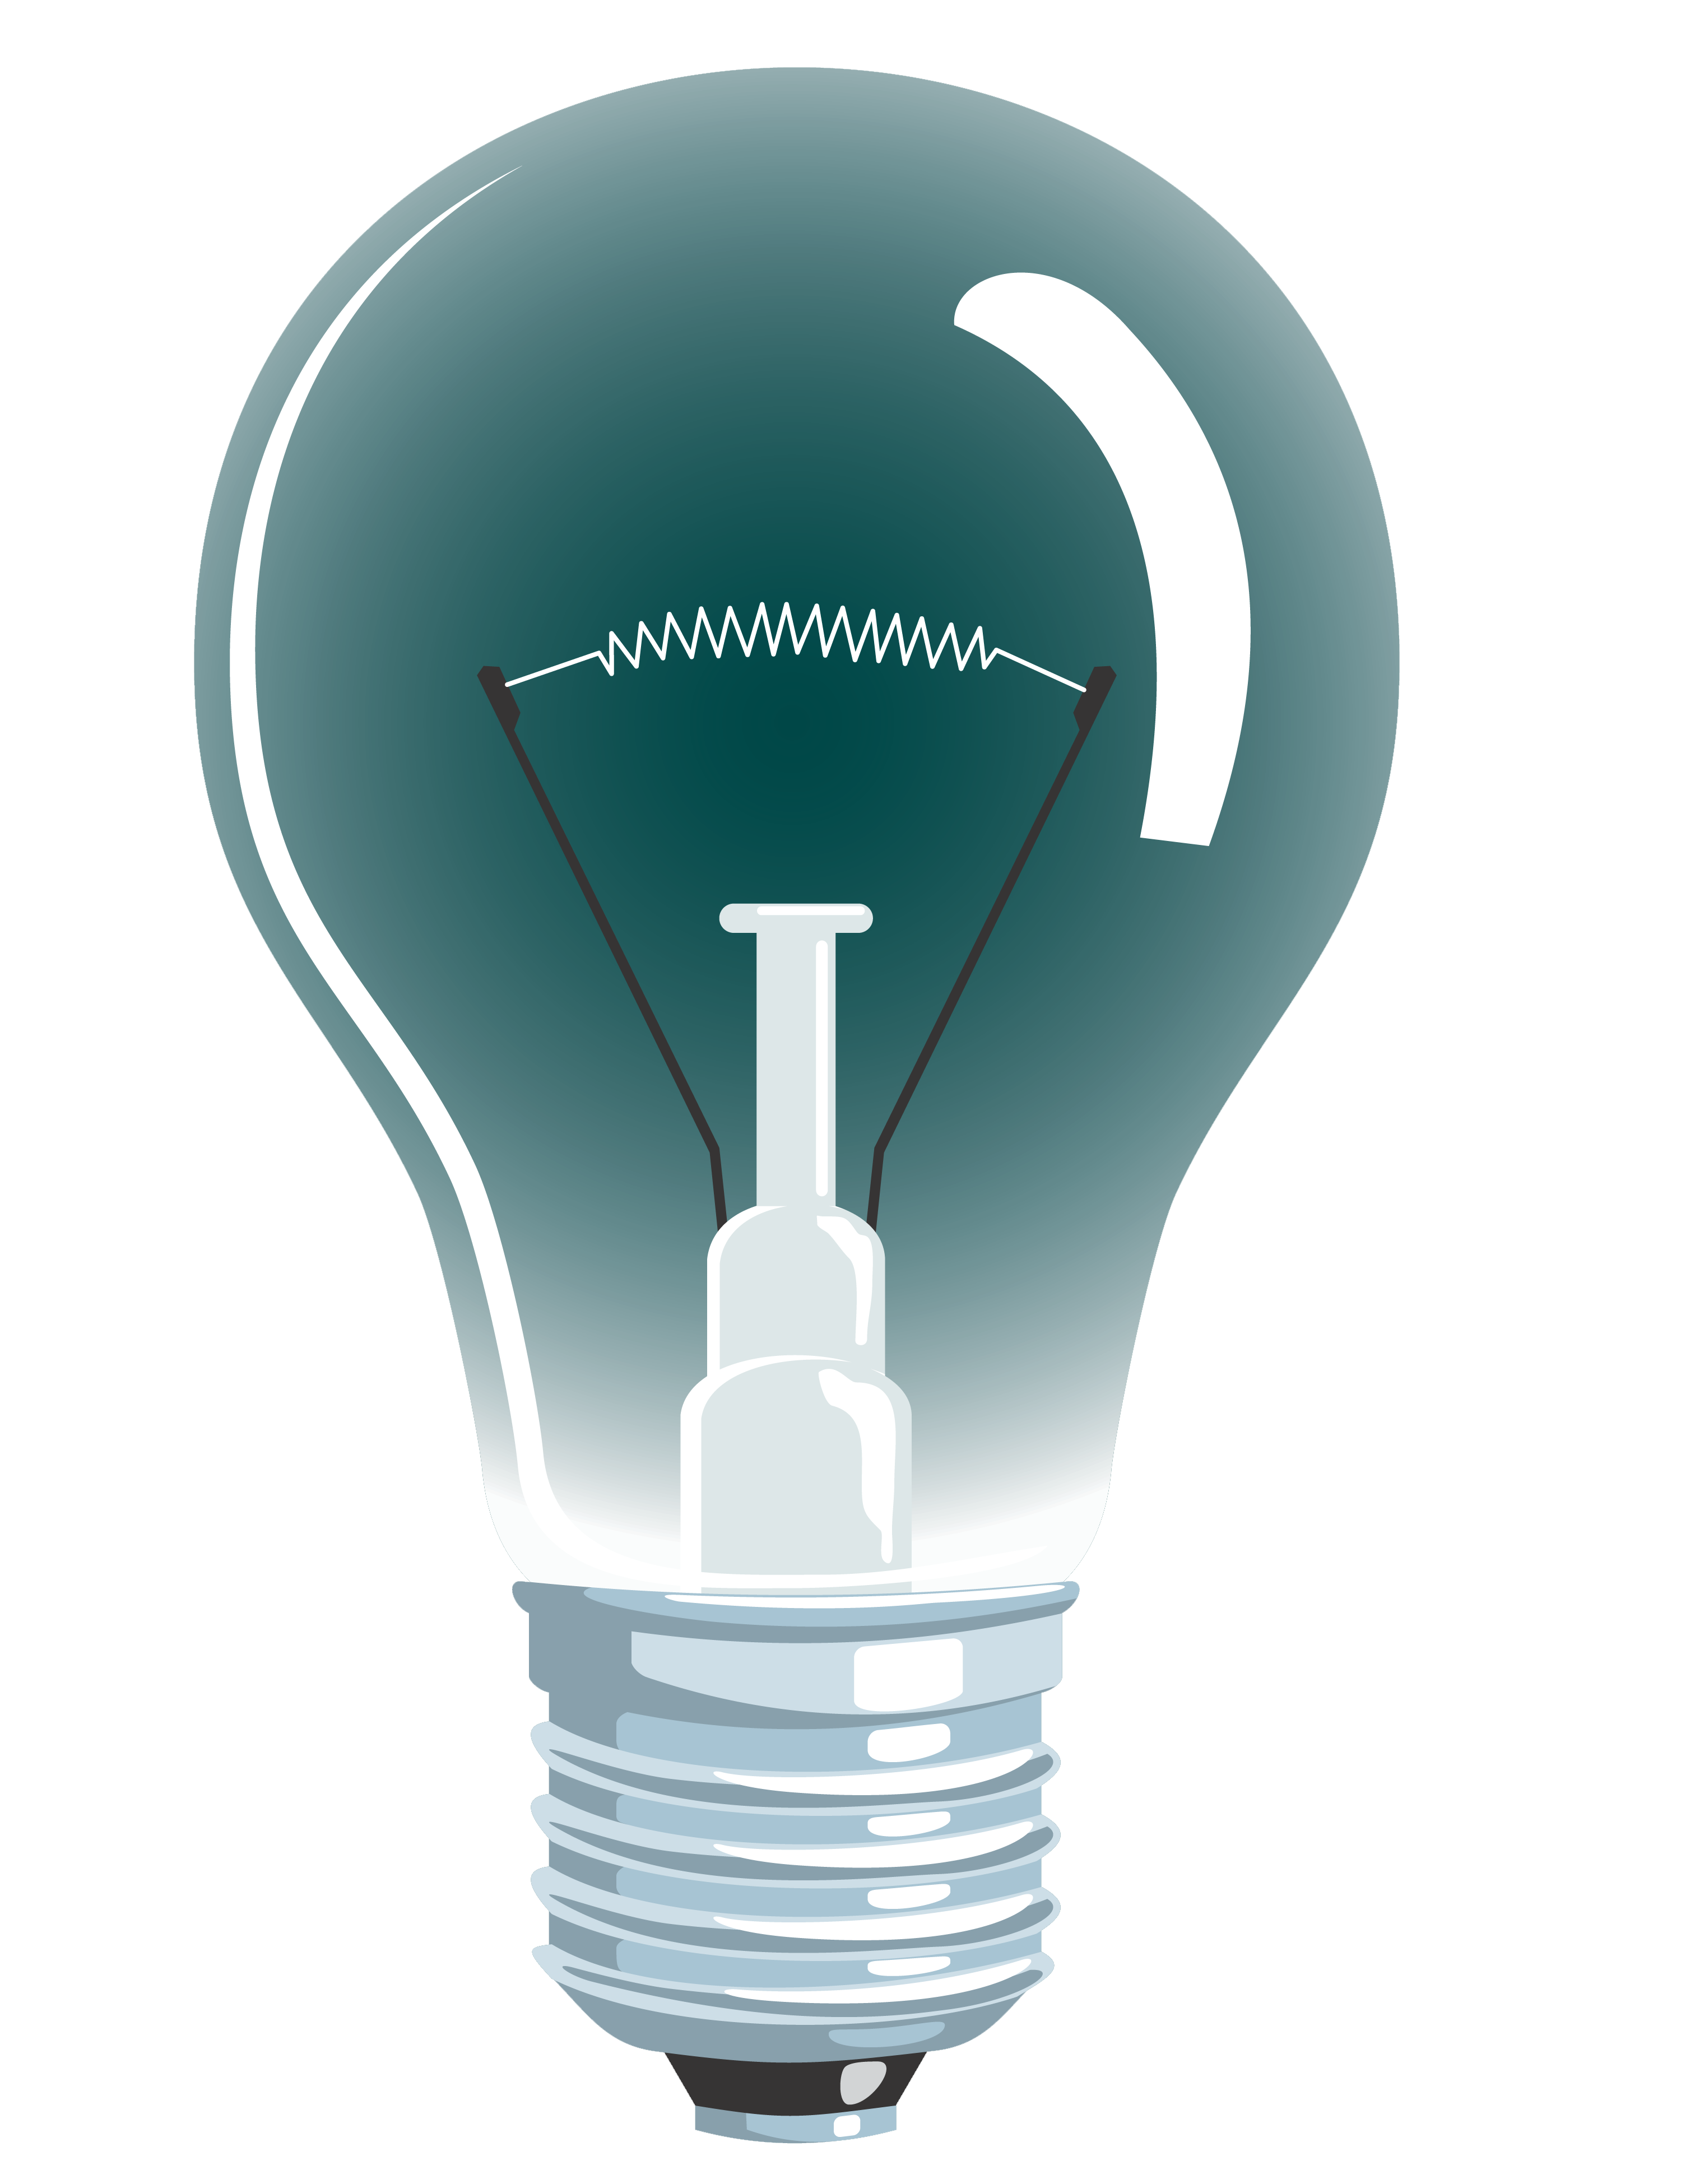 Lamp Png Image Bulb Light Bulb Lamp